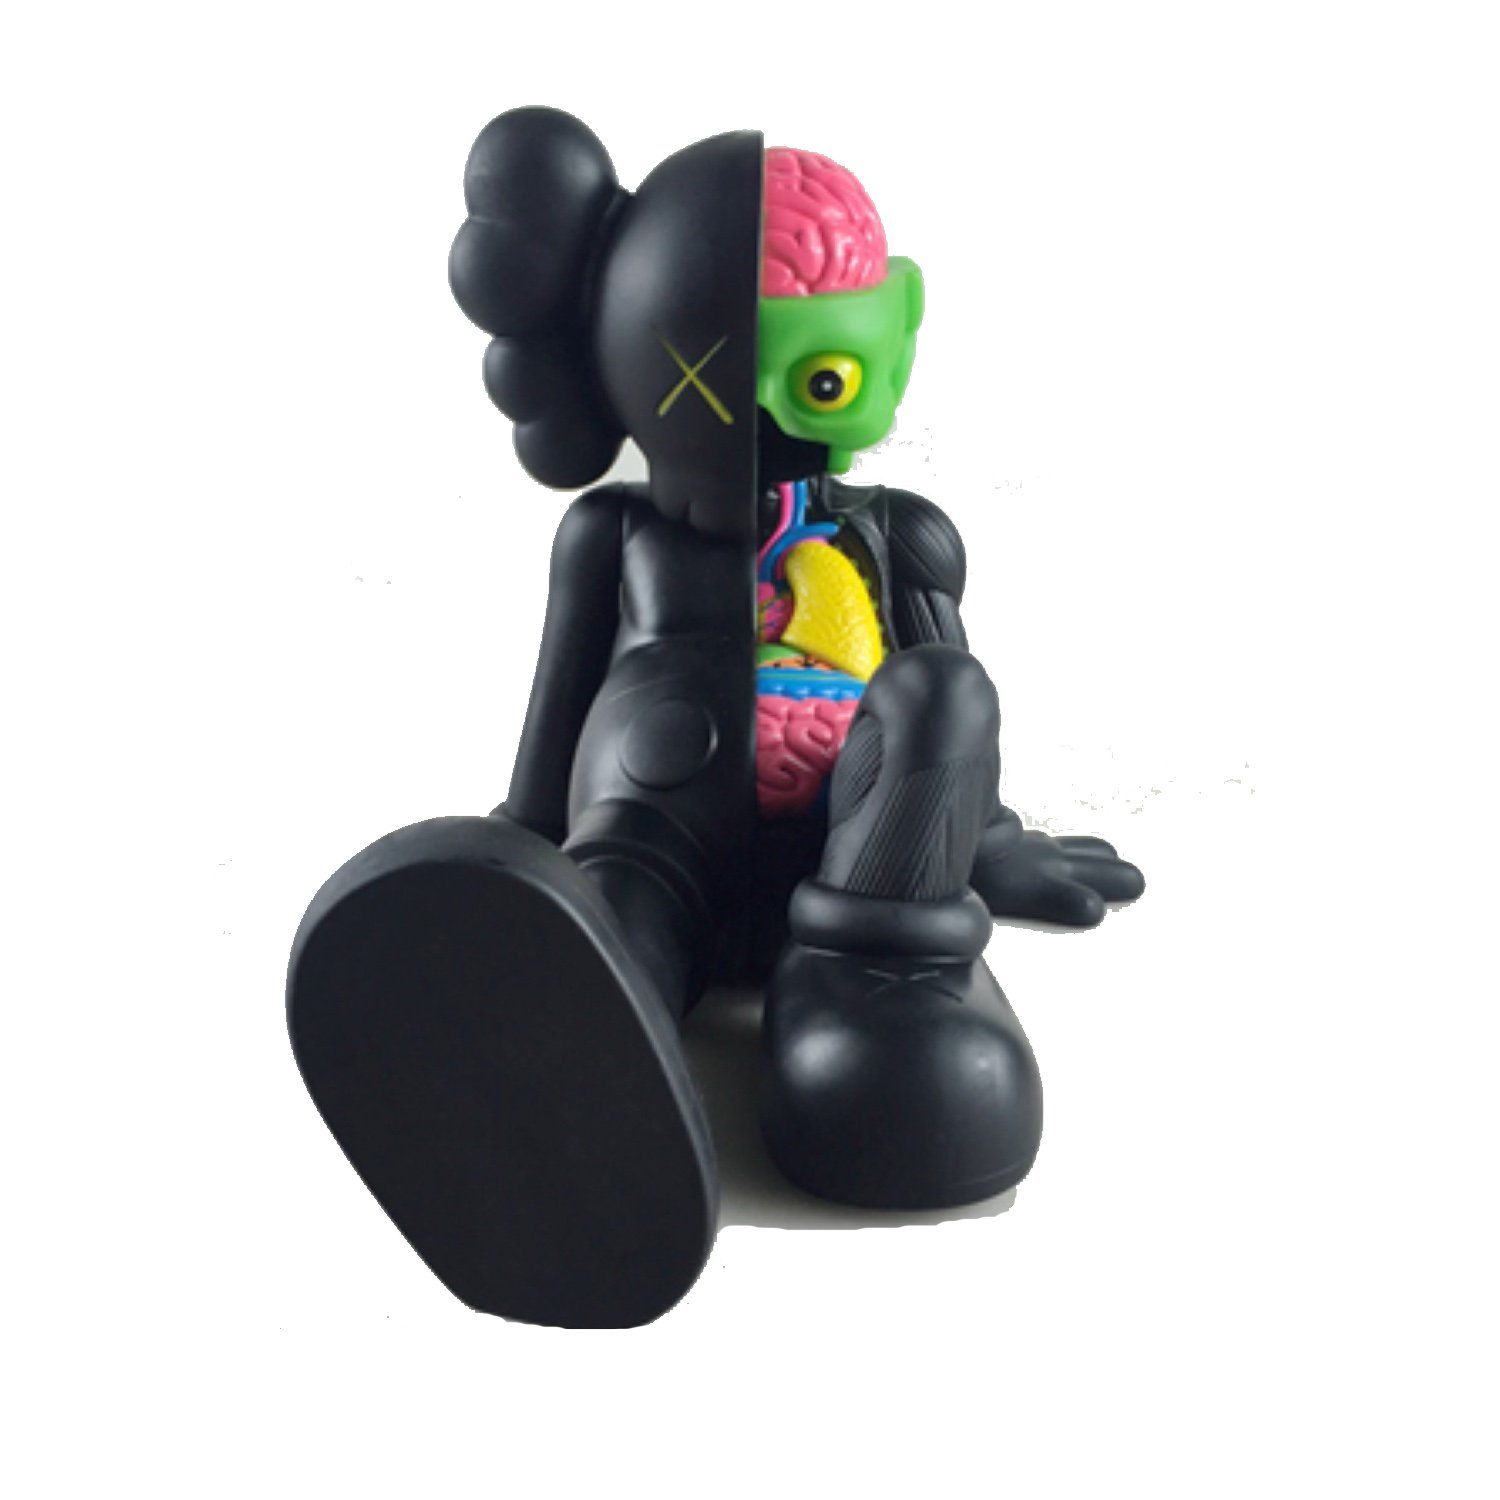 278806d4 KAWS BFF Sit Sitting 12 inch Dissected Companion Original Fake Art Toys  Action Figure Figurine Plush